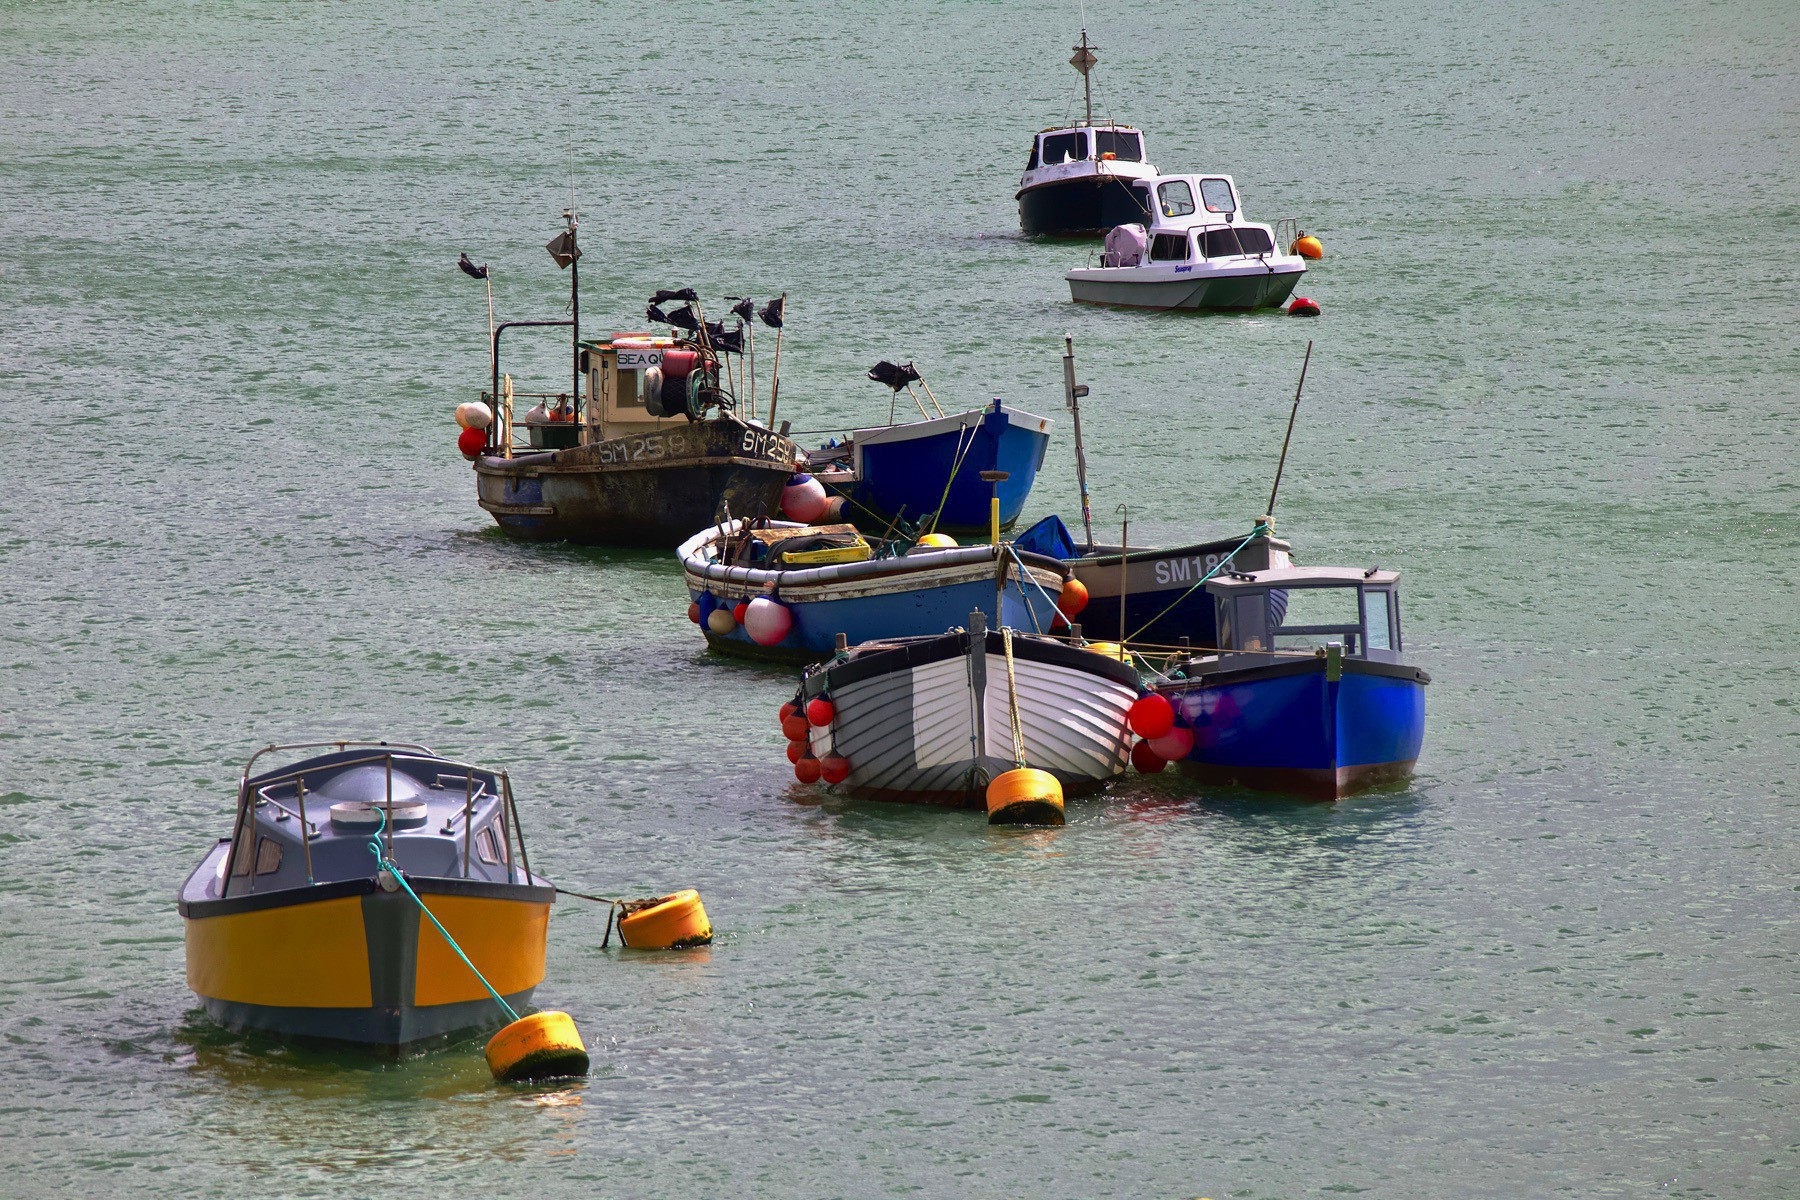 Boats moored in the River Adur between Shoreham-by-Sea and Shoreham Beach